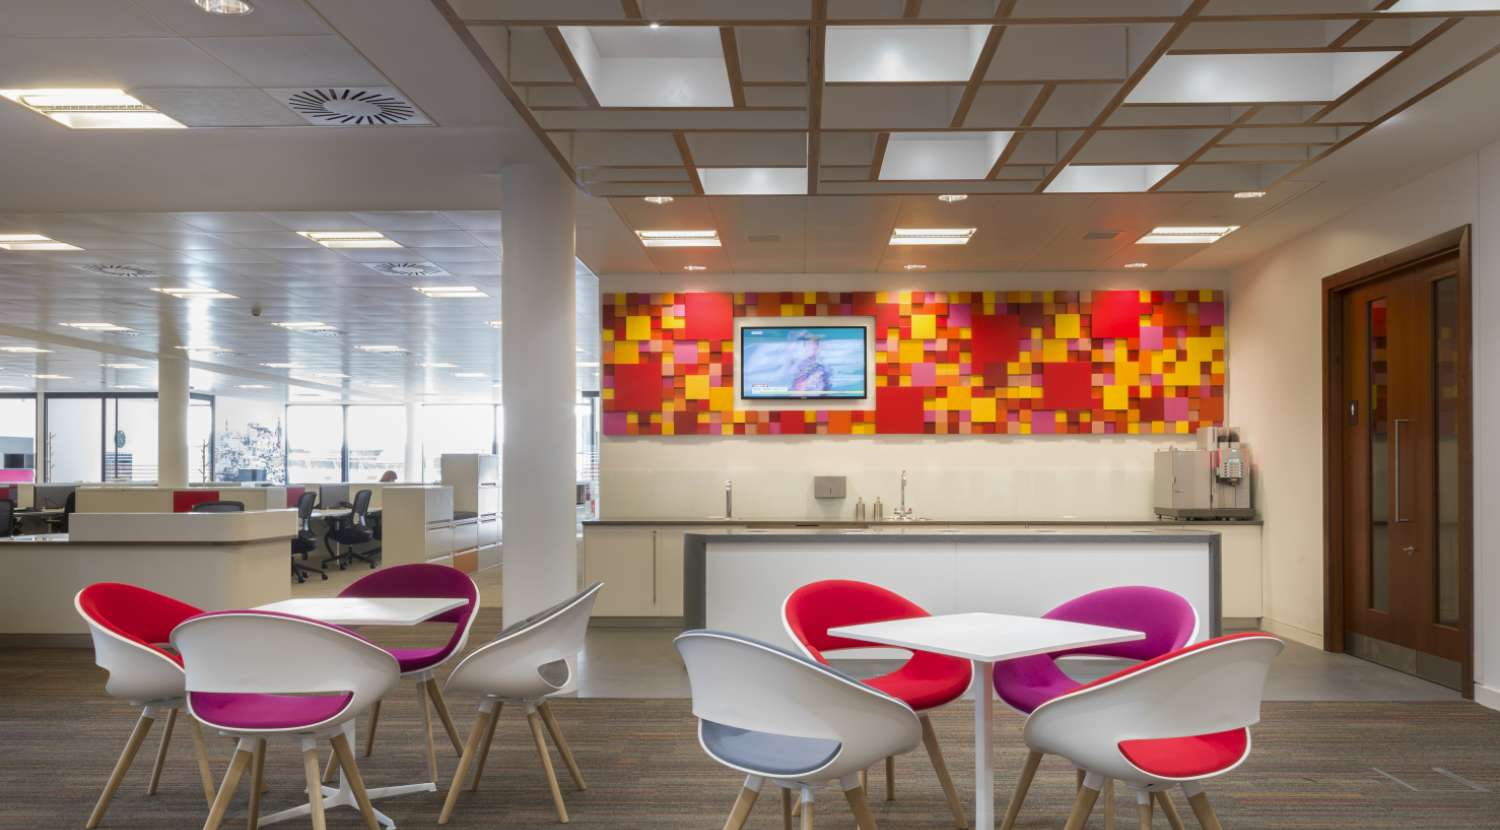 Cobit Case Study It Risk Management In A Bank Fit Out With Colourful Chairs And Wall Detailing